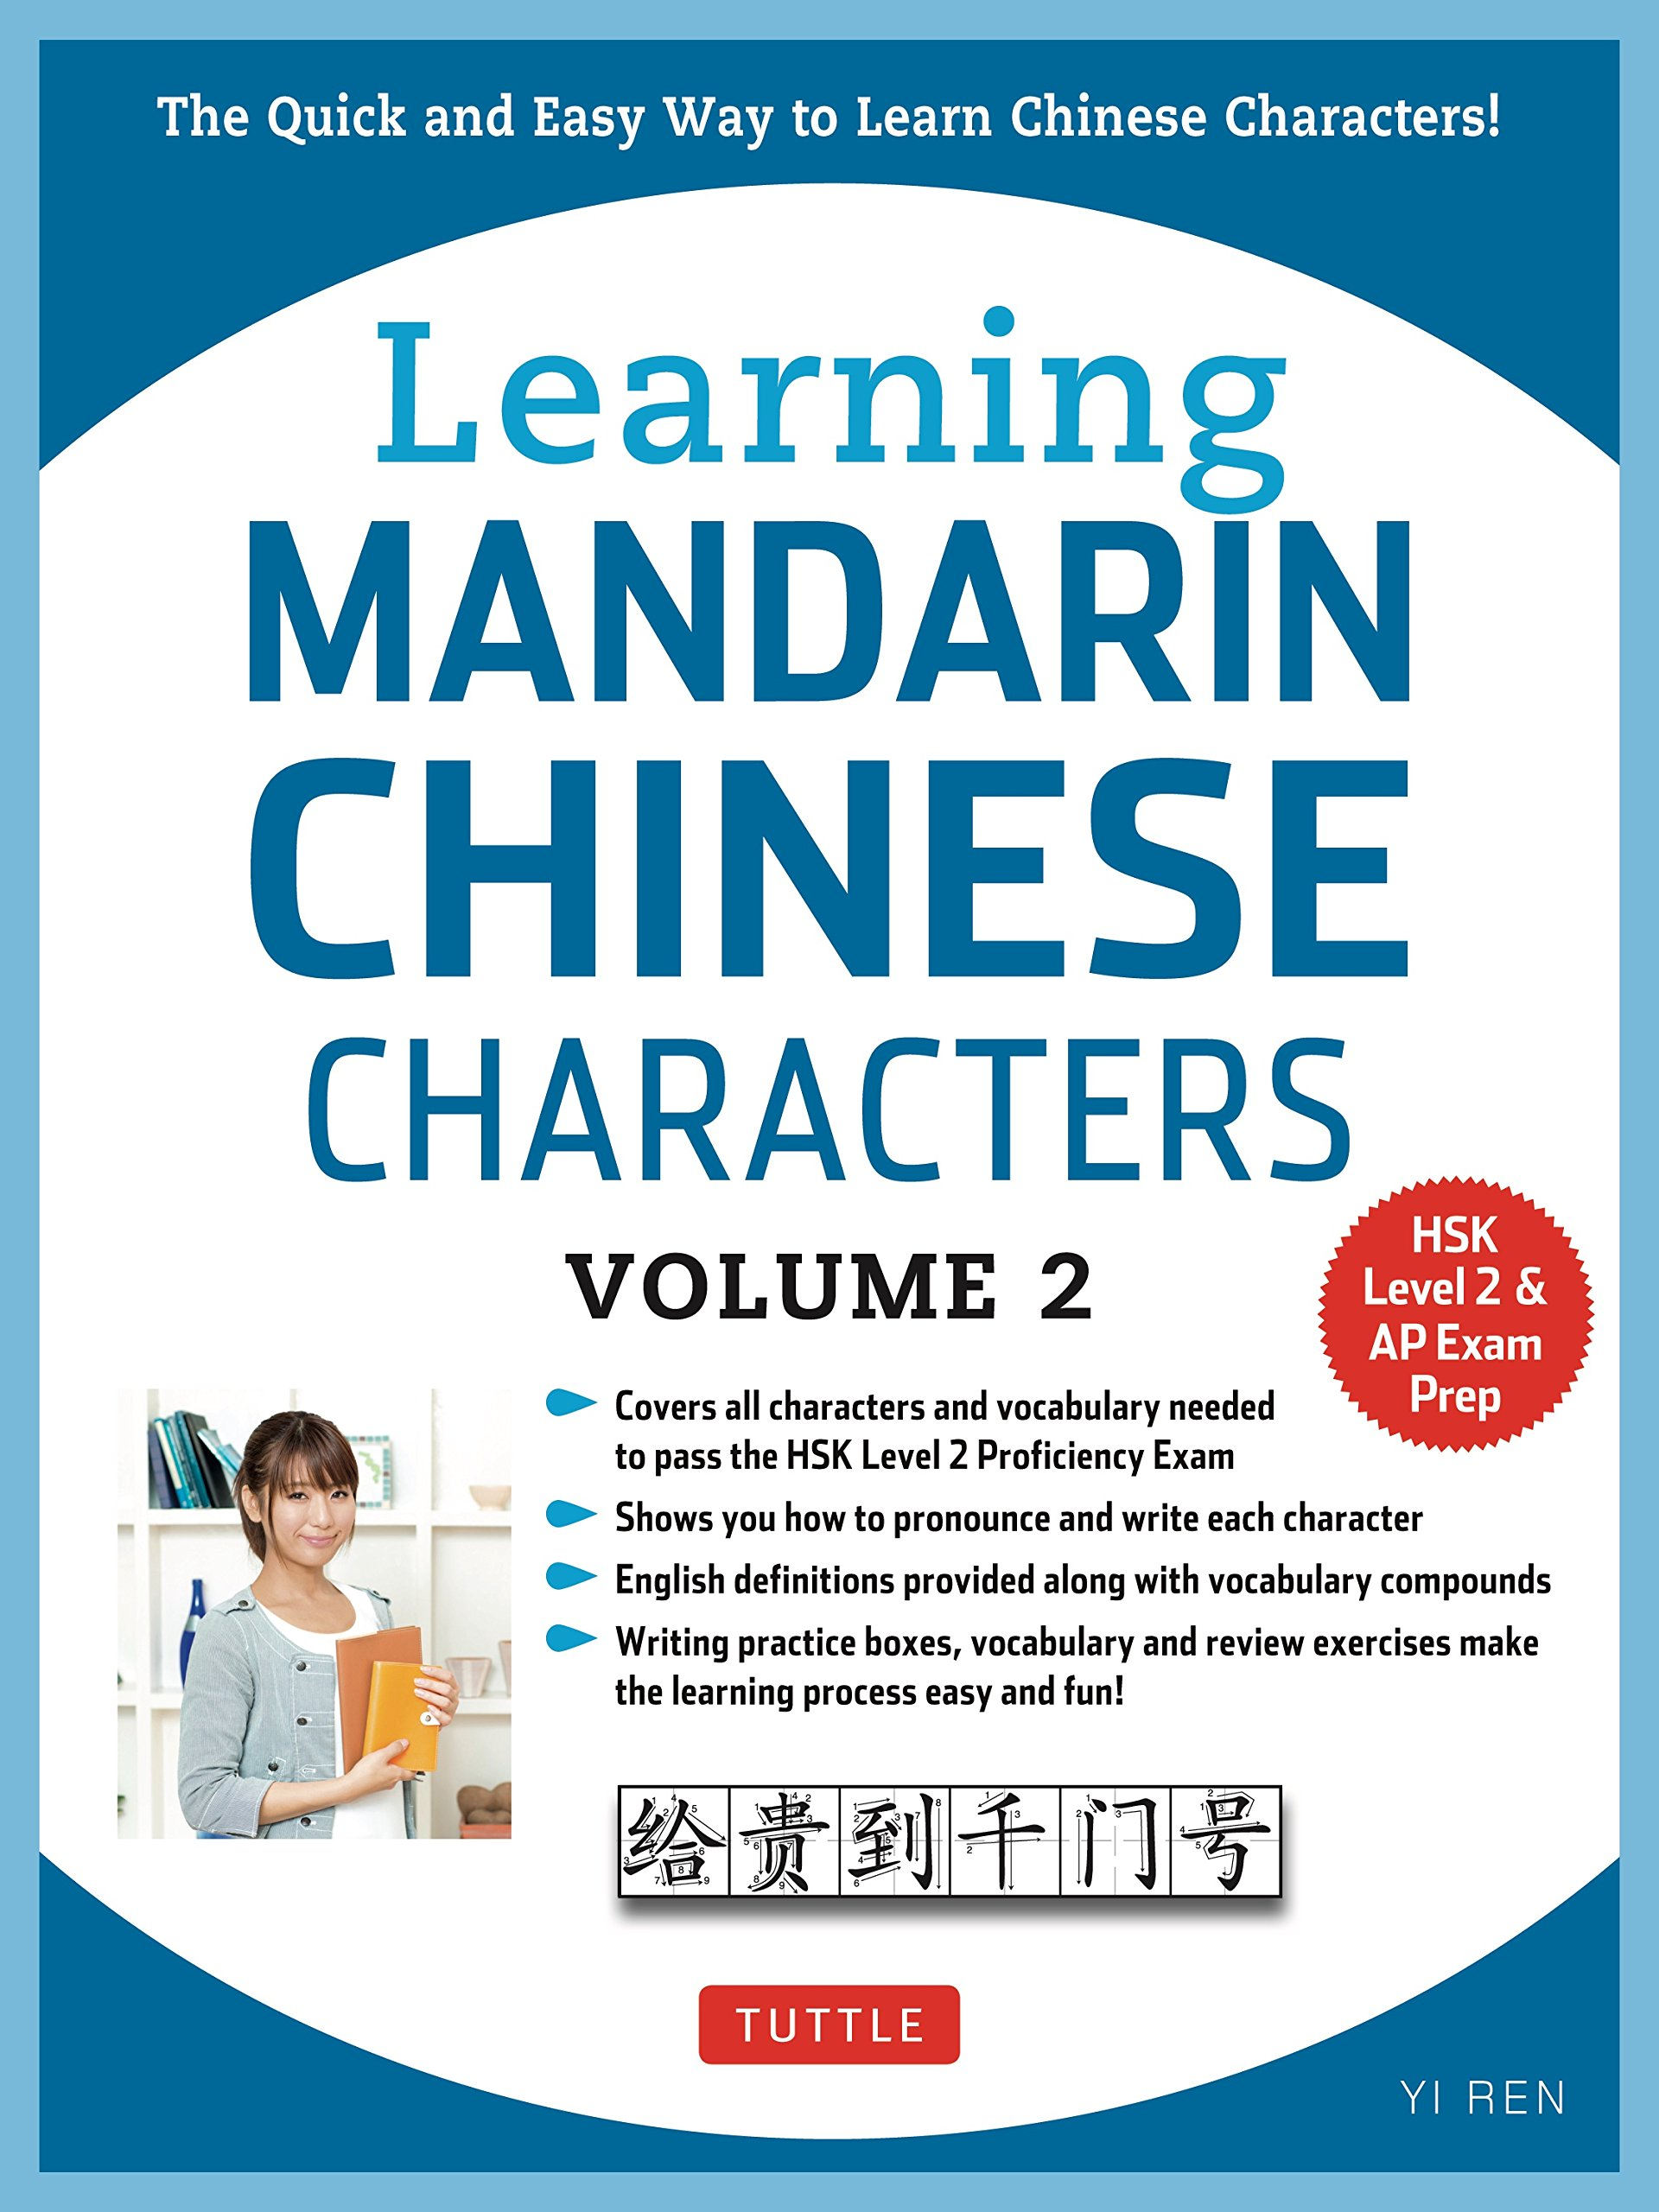 The Quick and Easy Way to Learn Chinese Characters! HSK Level 2 /& AP Study Exam Prep Book Learning Mandarin Chinese Characters Volume 2